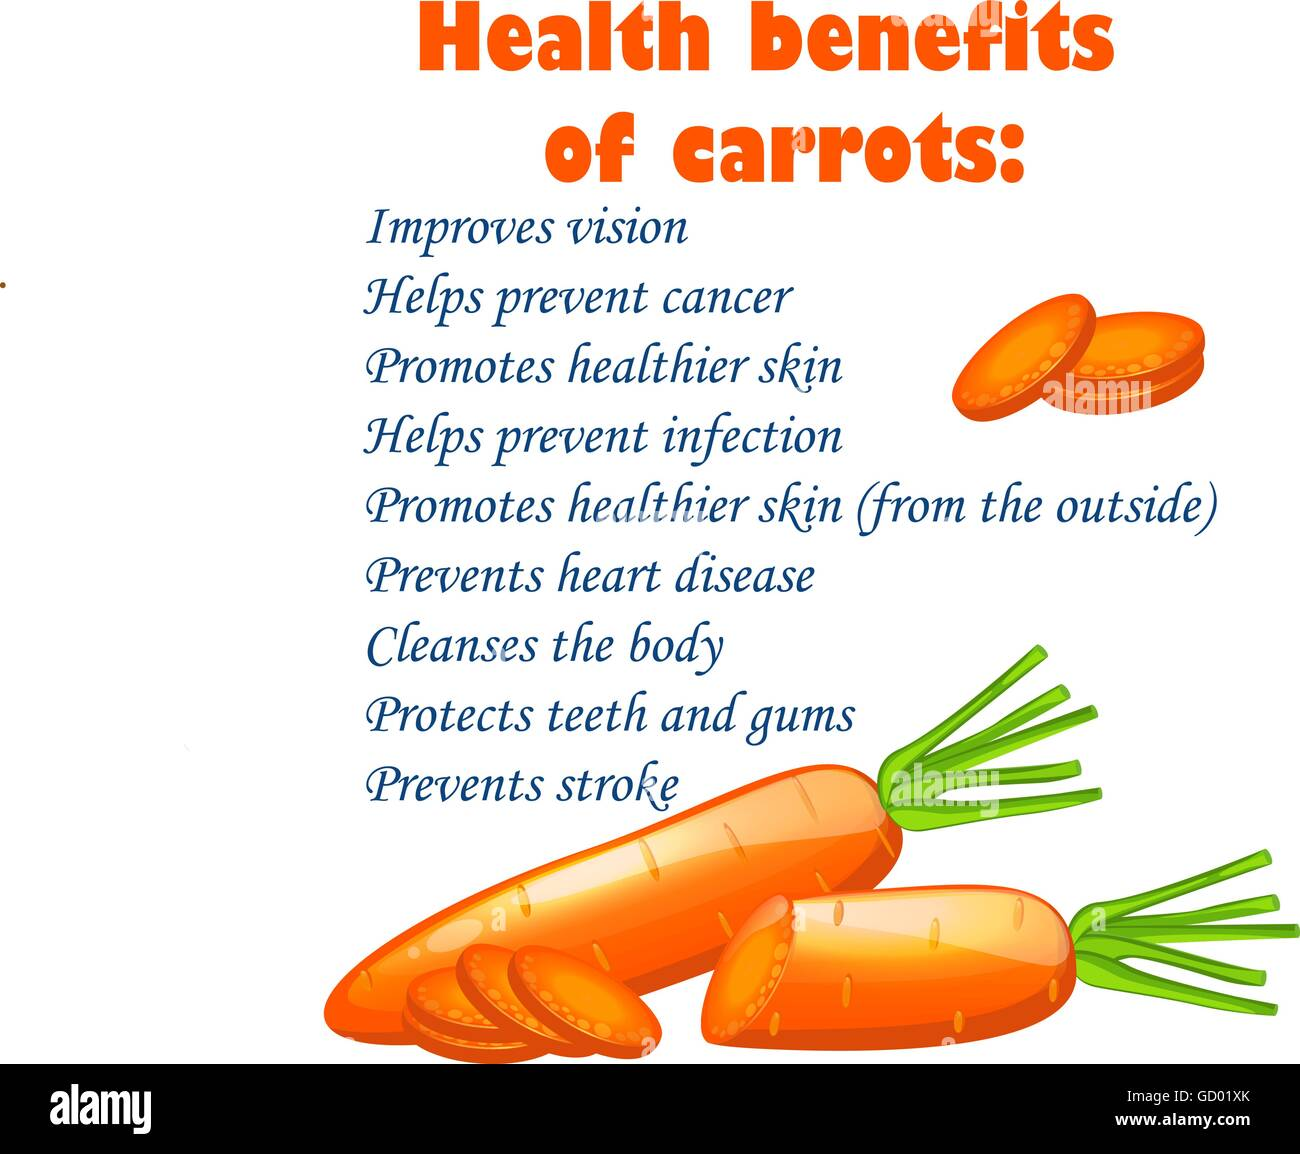 nutrition facts carrots stock vector images - alamy